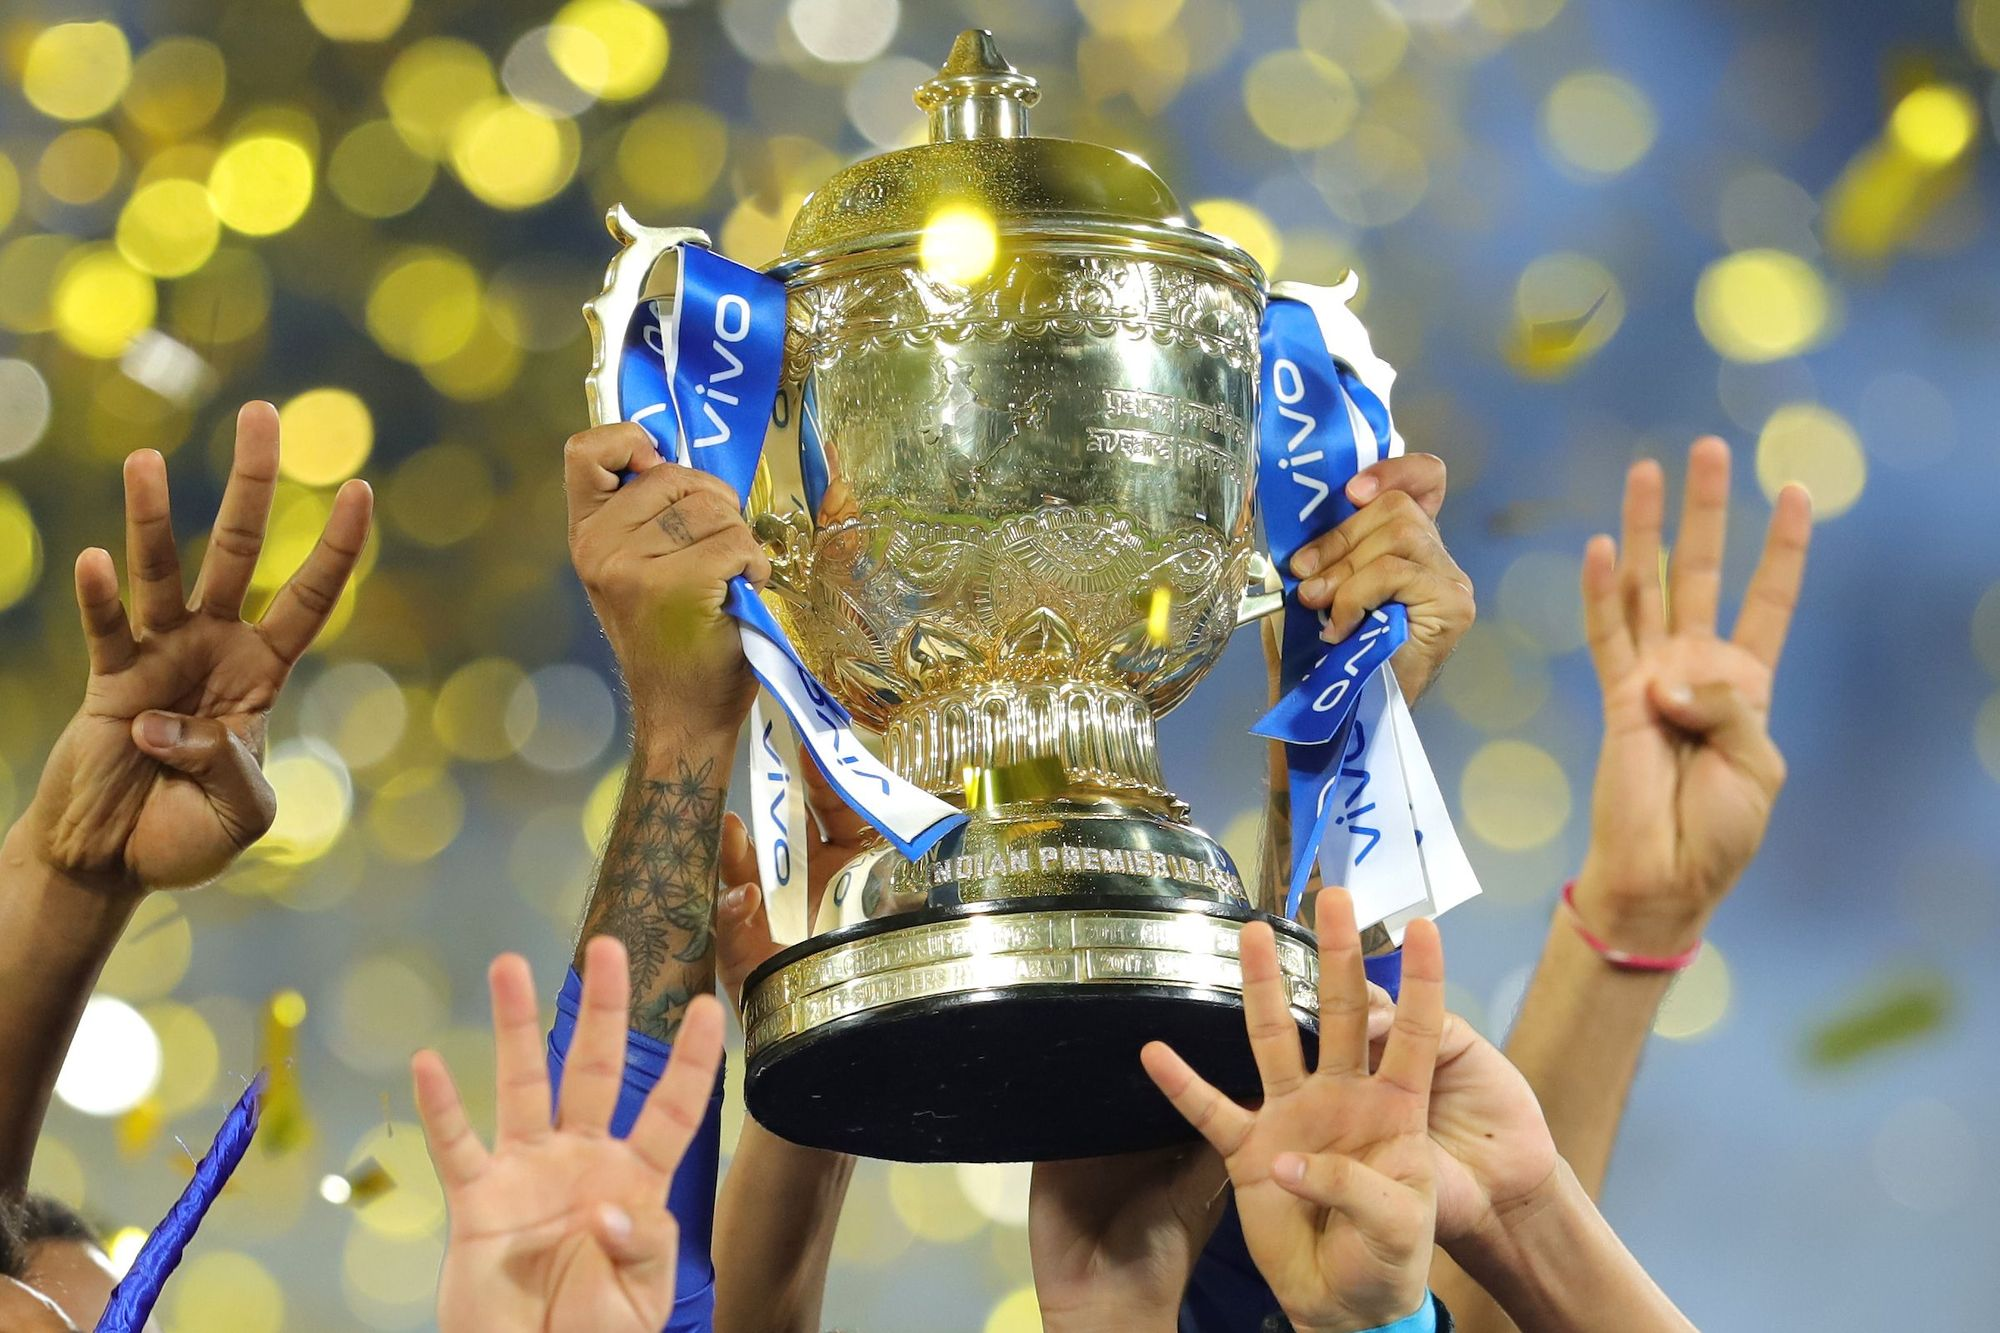 IPL 2022 will see two teams added to the IPL mix